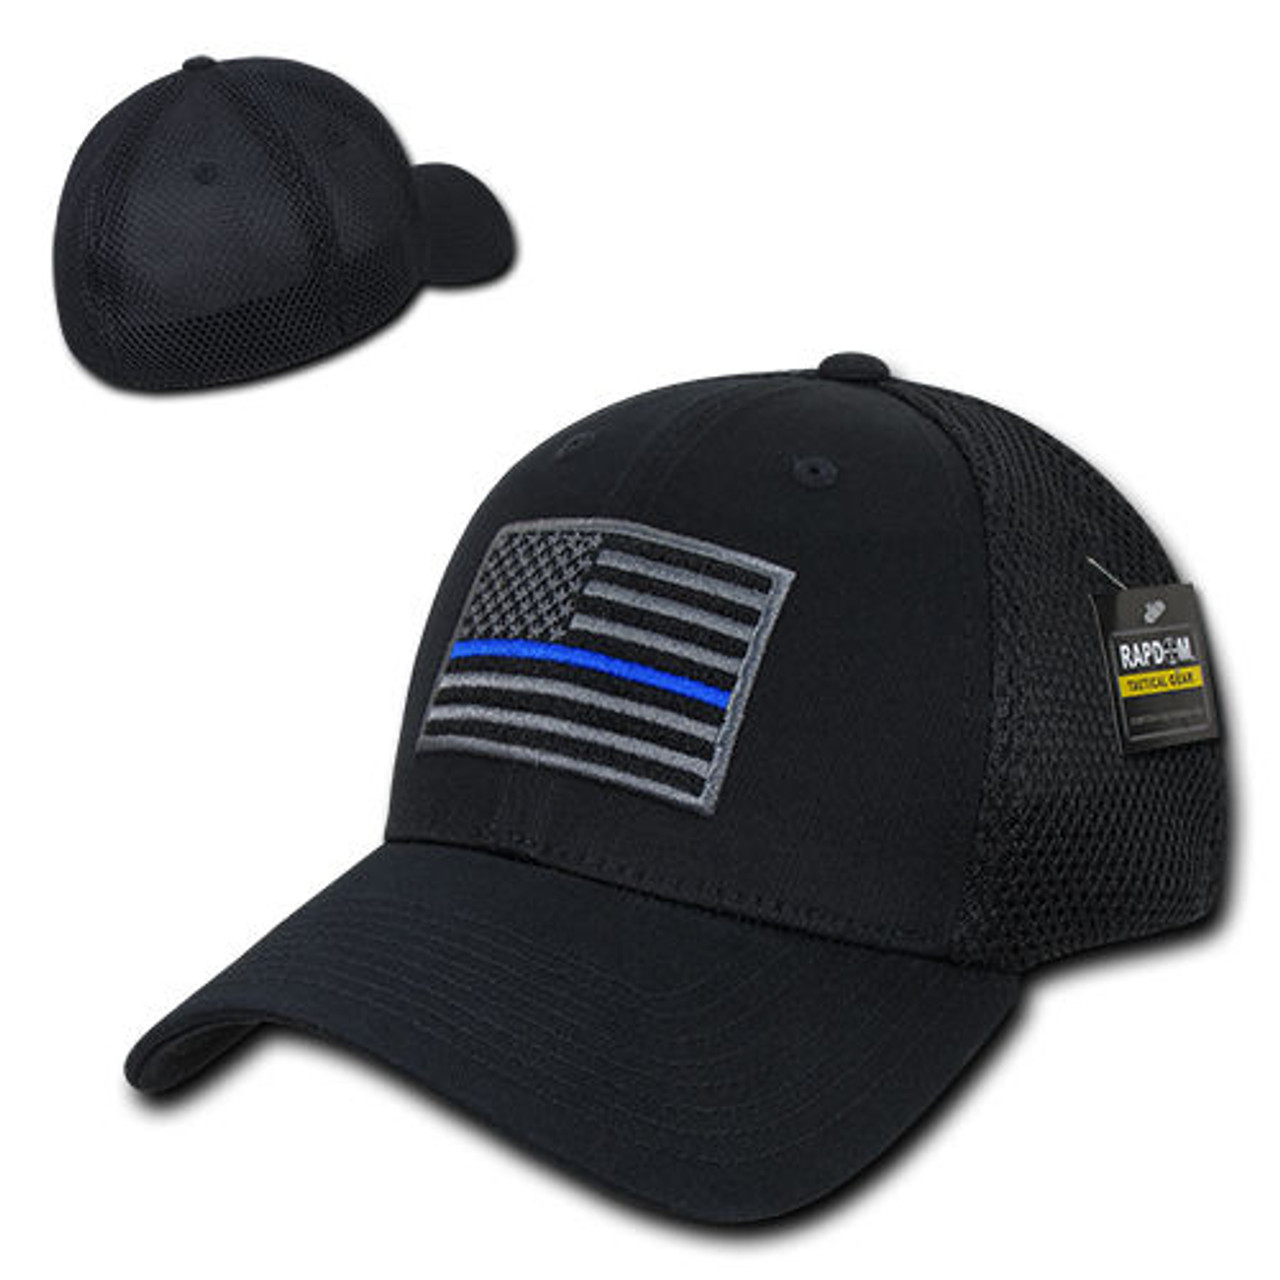 e143ca9b5 TBL Black USA American Flag Tactical Operator Mesh Flex Fit Baseball Hat Cap